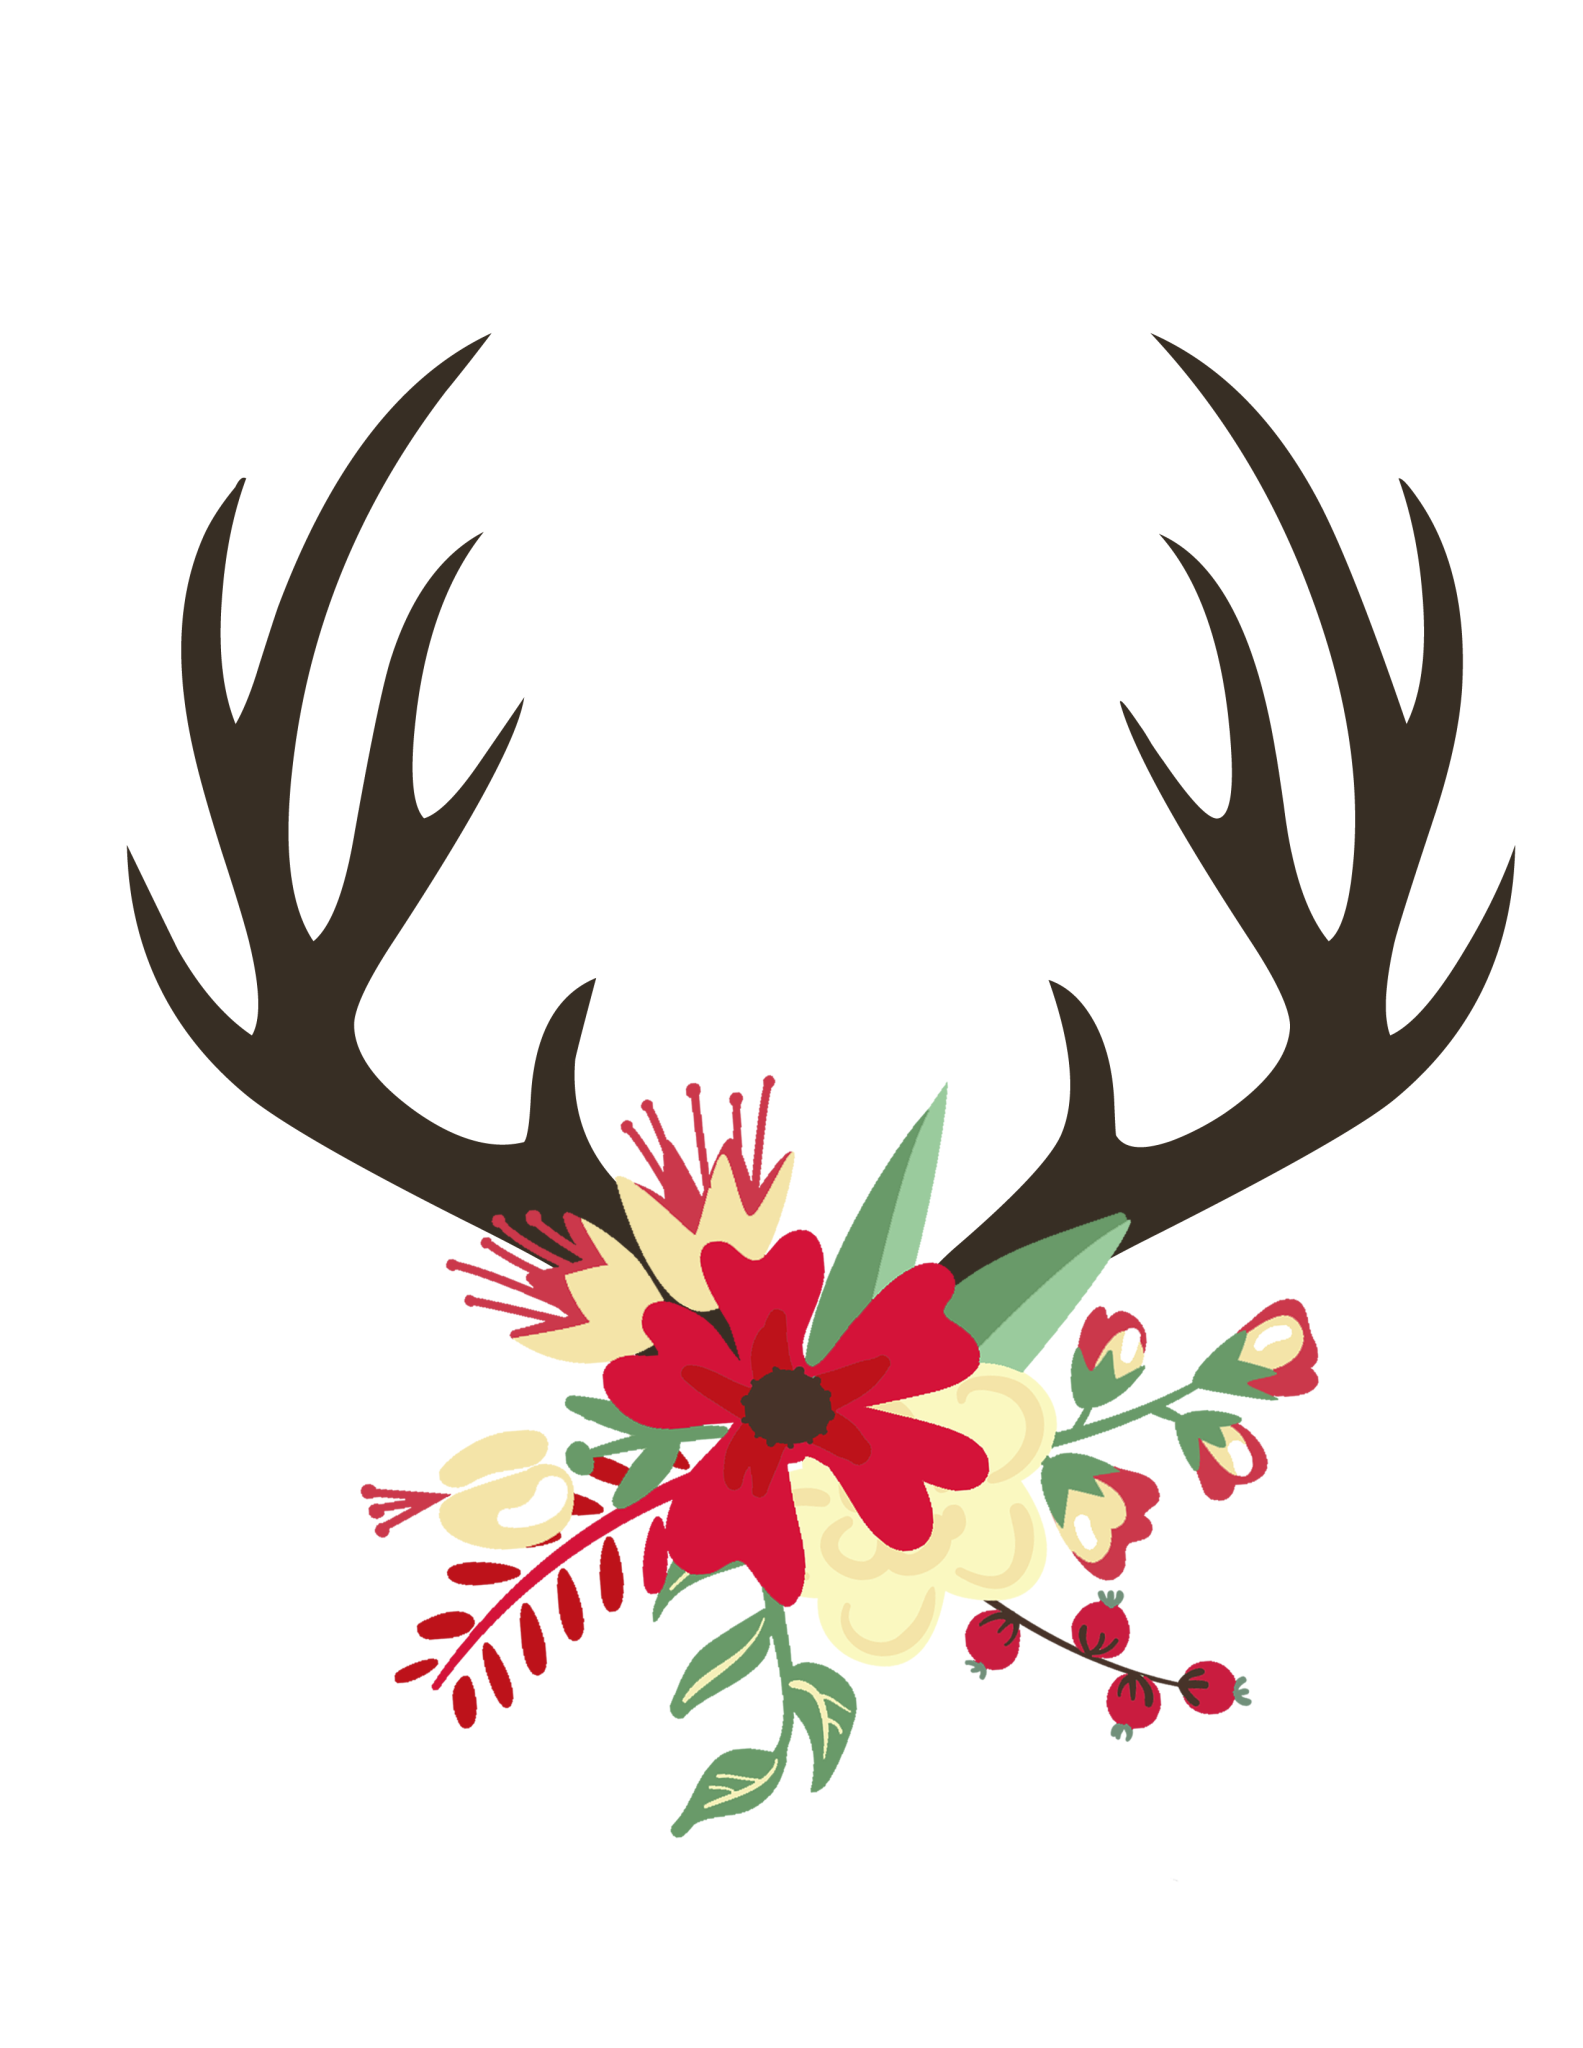 Christmas Antler Print Png File Shared From Box Christmas Vignettes Free Christmas Printables Christmas Pillowcases